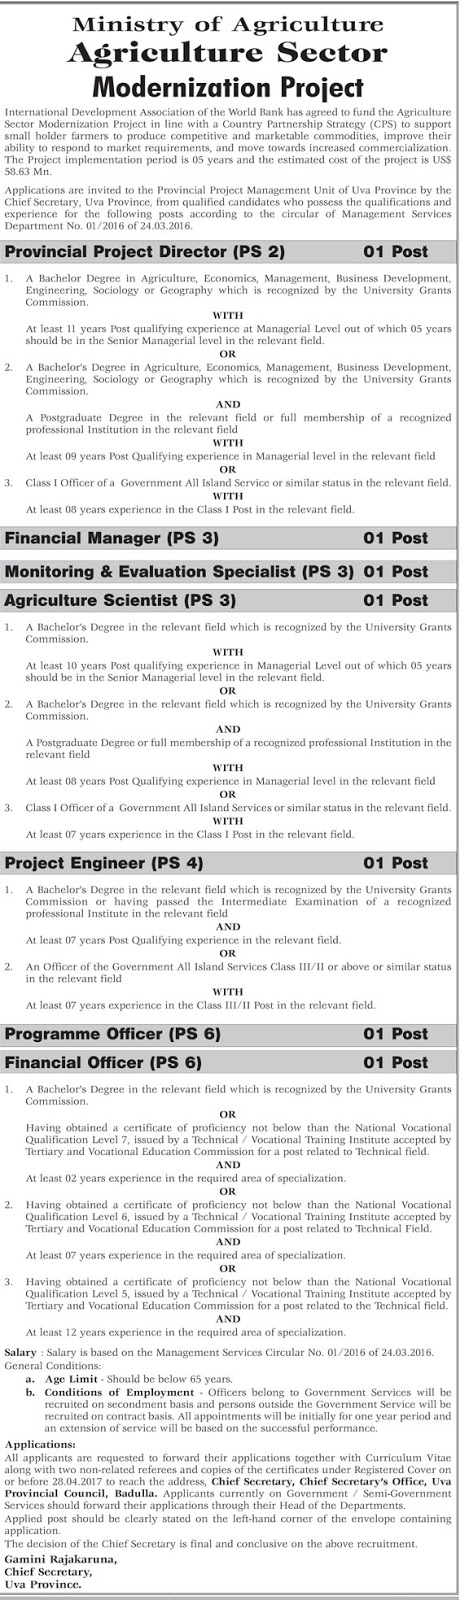 Sri Lankan Government Job Vacancies at Ministry of Agriculture for Provincial Project Director, Financial Manager, Monitoring & Evaluation Specialist, Agriculture Scientist, Project Engineer, Programme Officer, Financial Officer